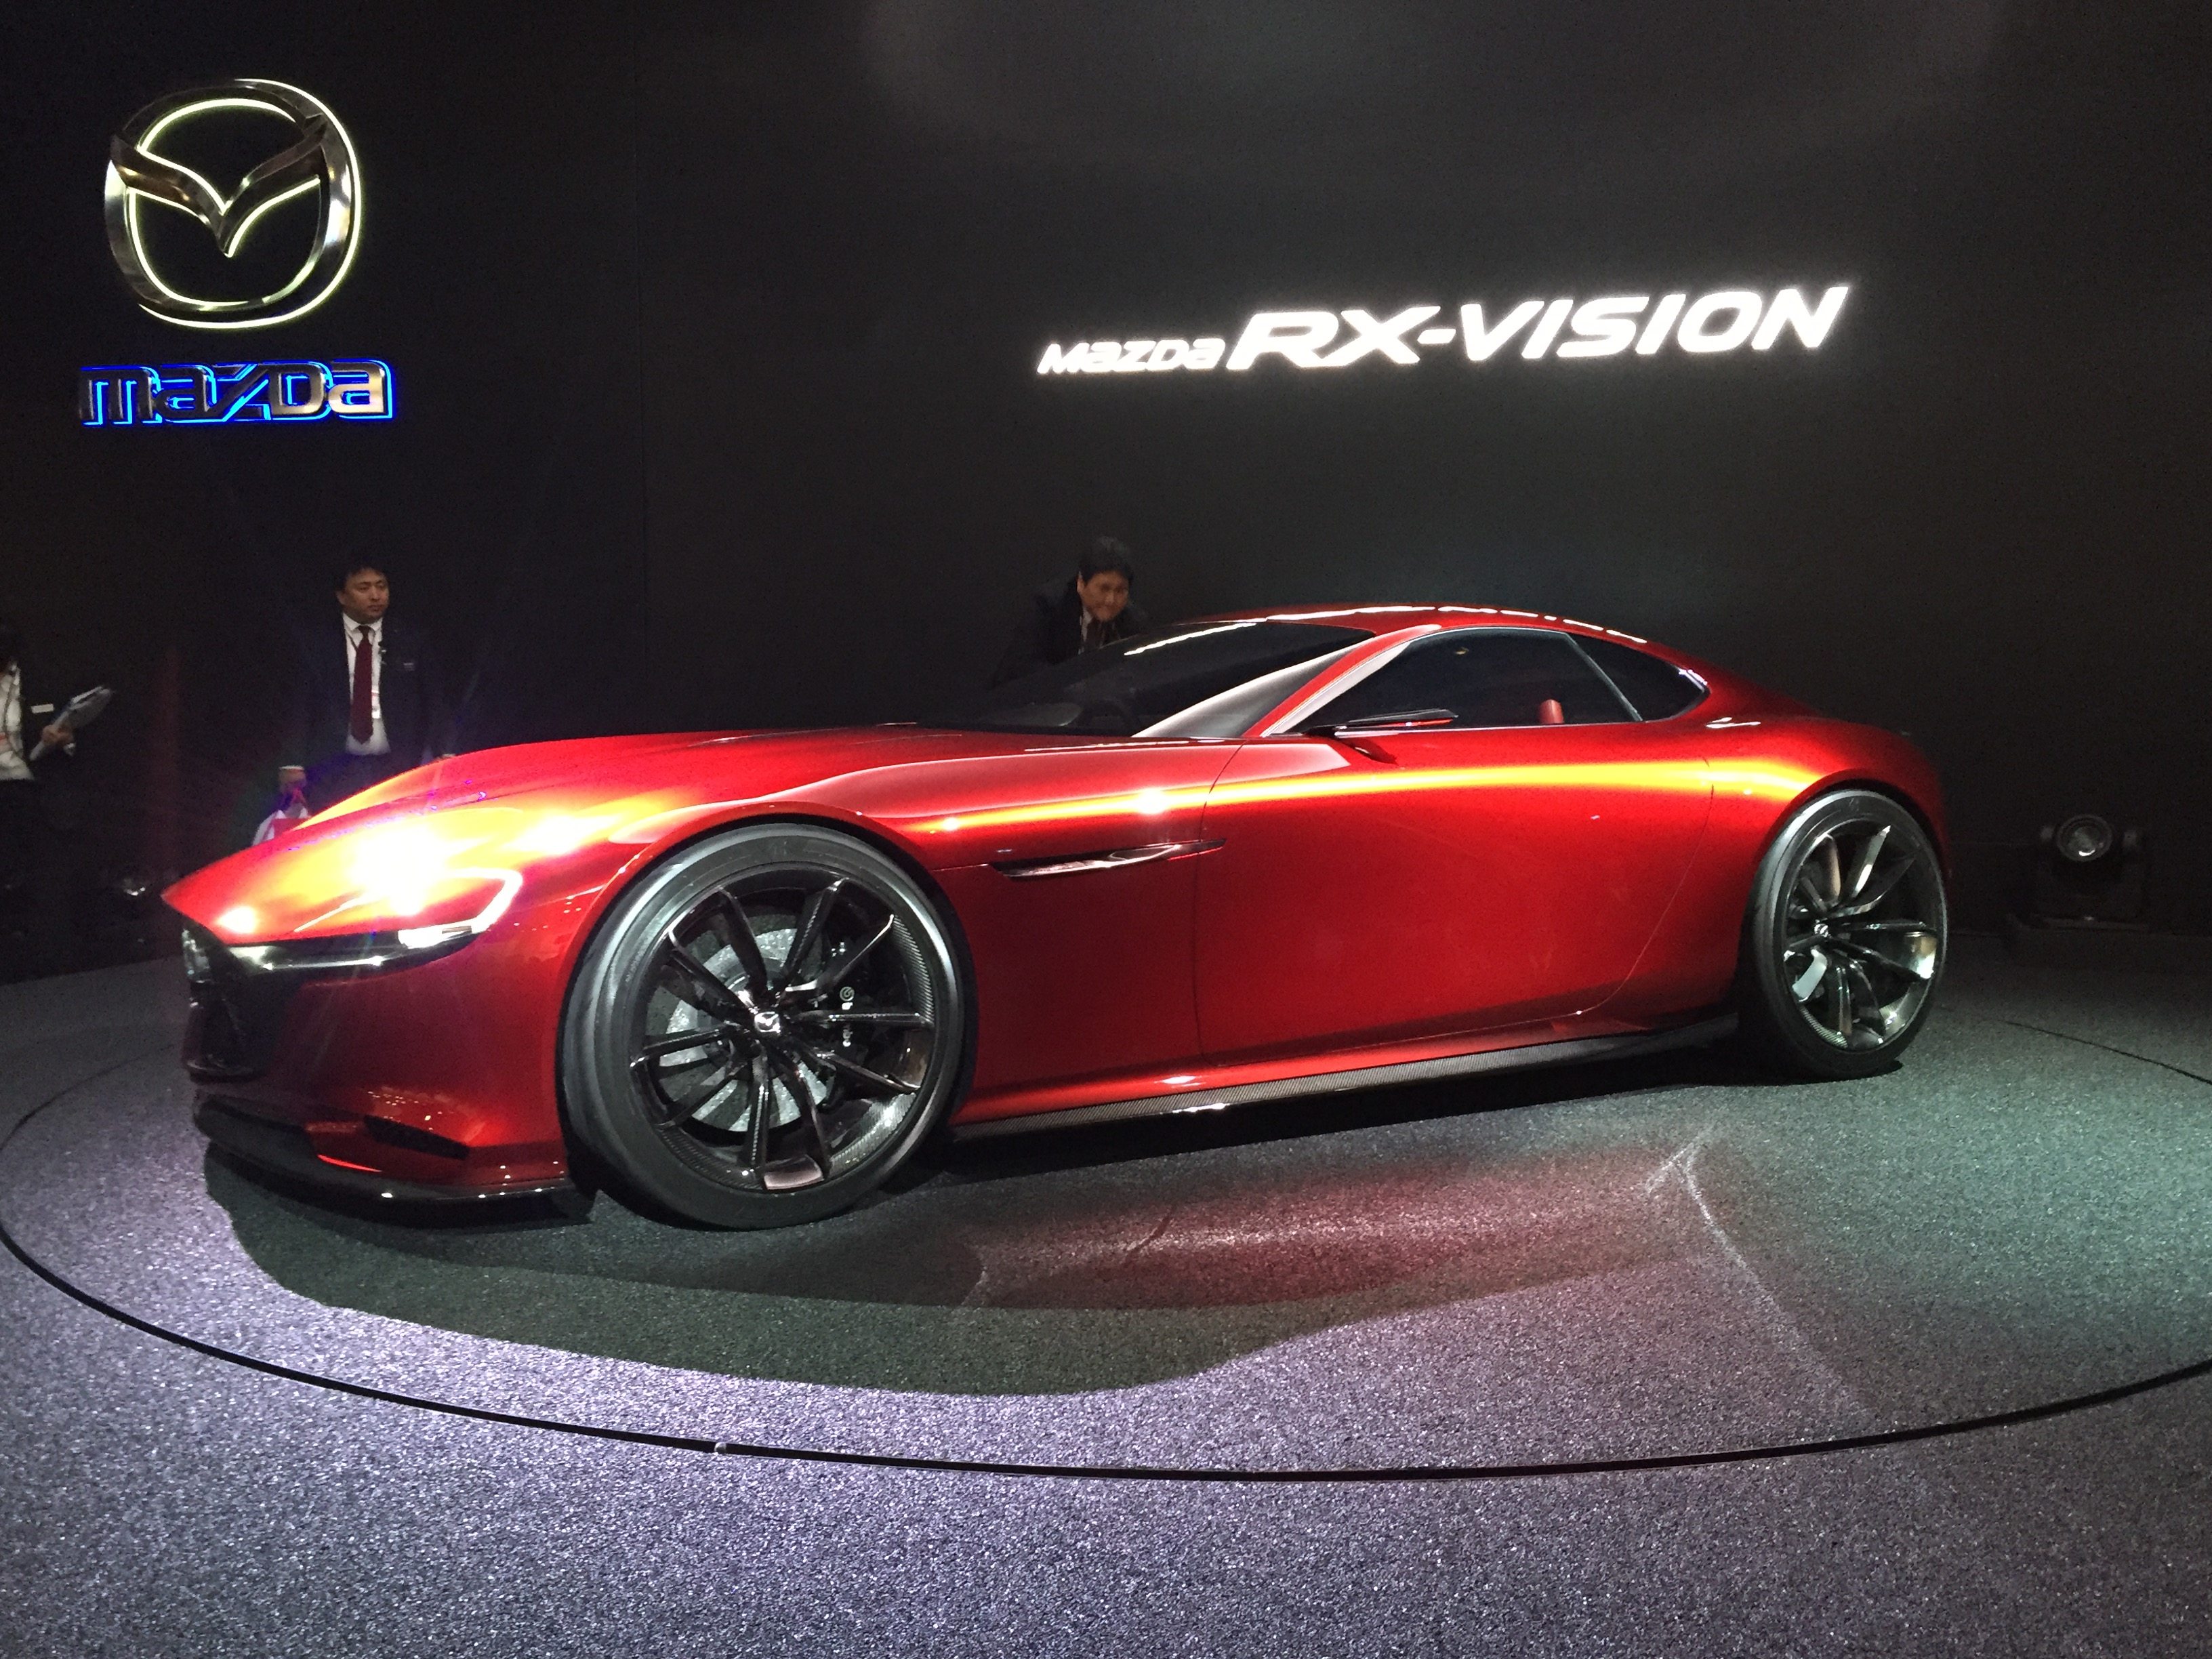 2016 Nissan 370z New Fca Recall Mazda Rx Vision What S